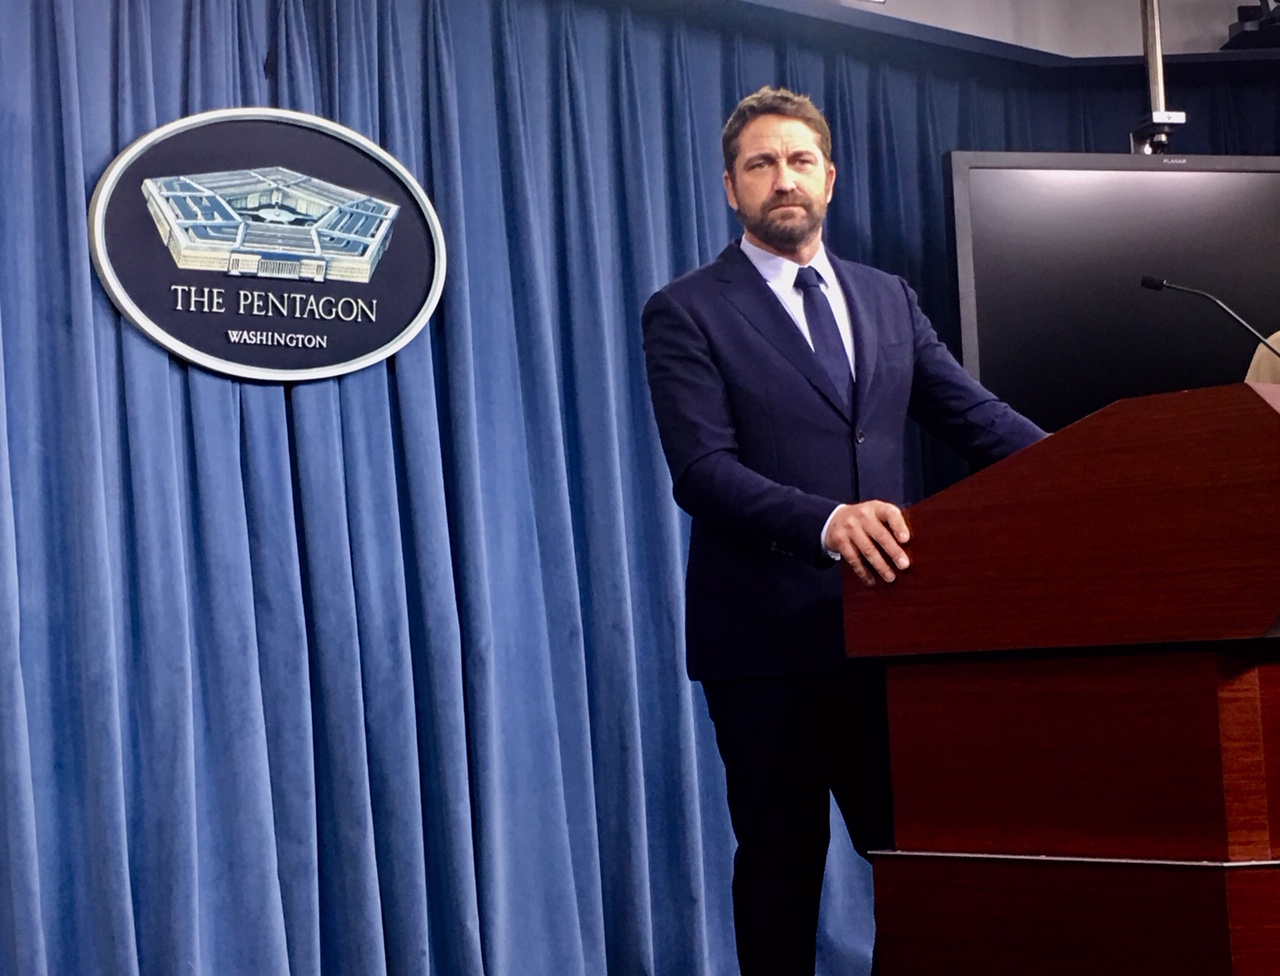 Actor Gerard Butler made a Pentagon appearance Monday to promote his movie